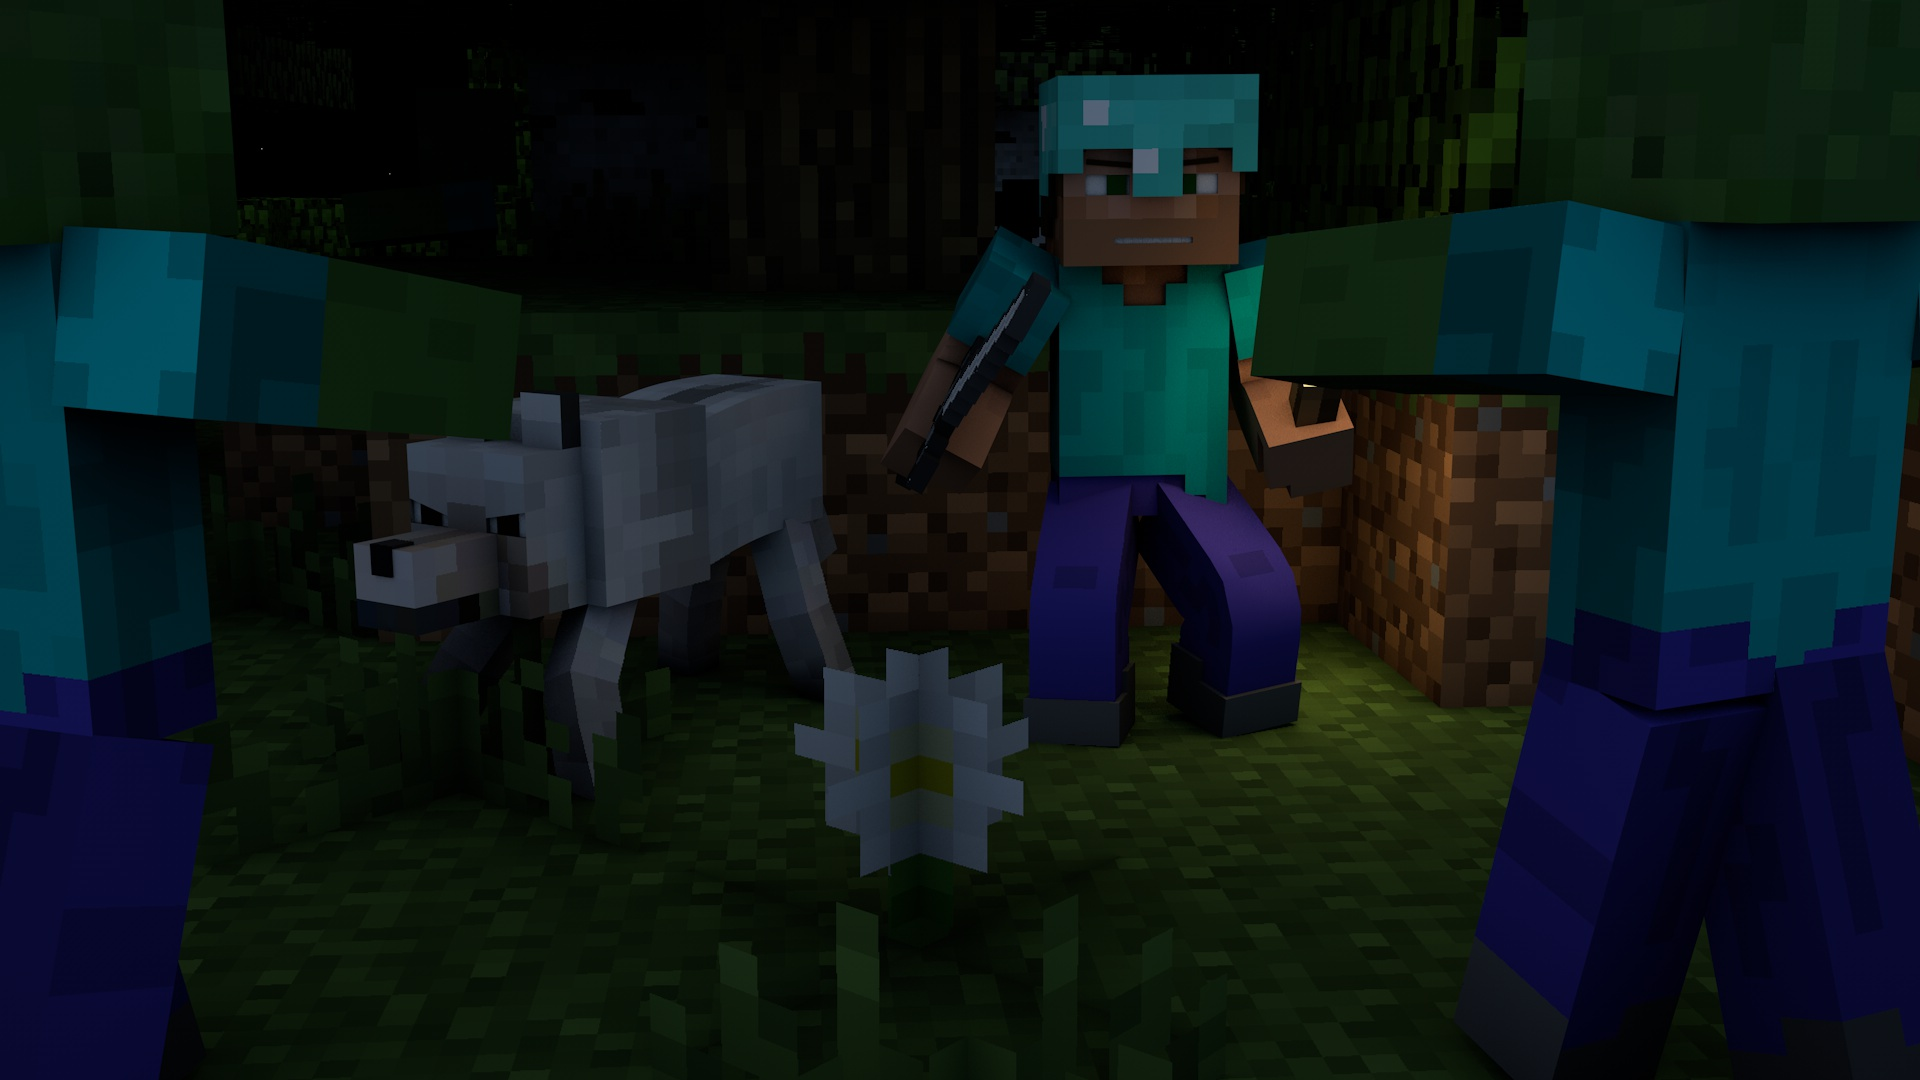 cool wallpapers of minecraft zombies - photo #1